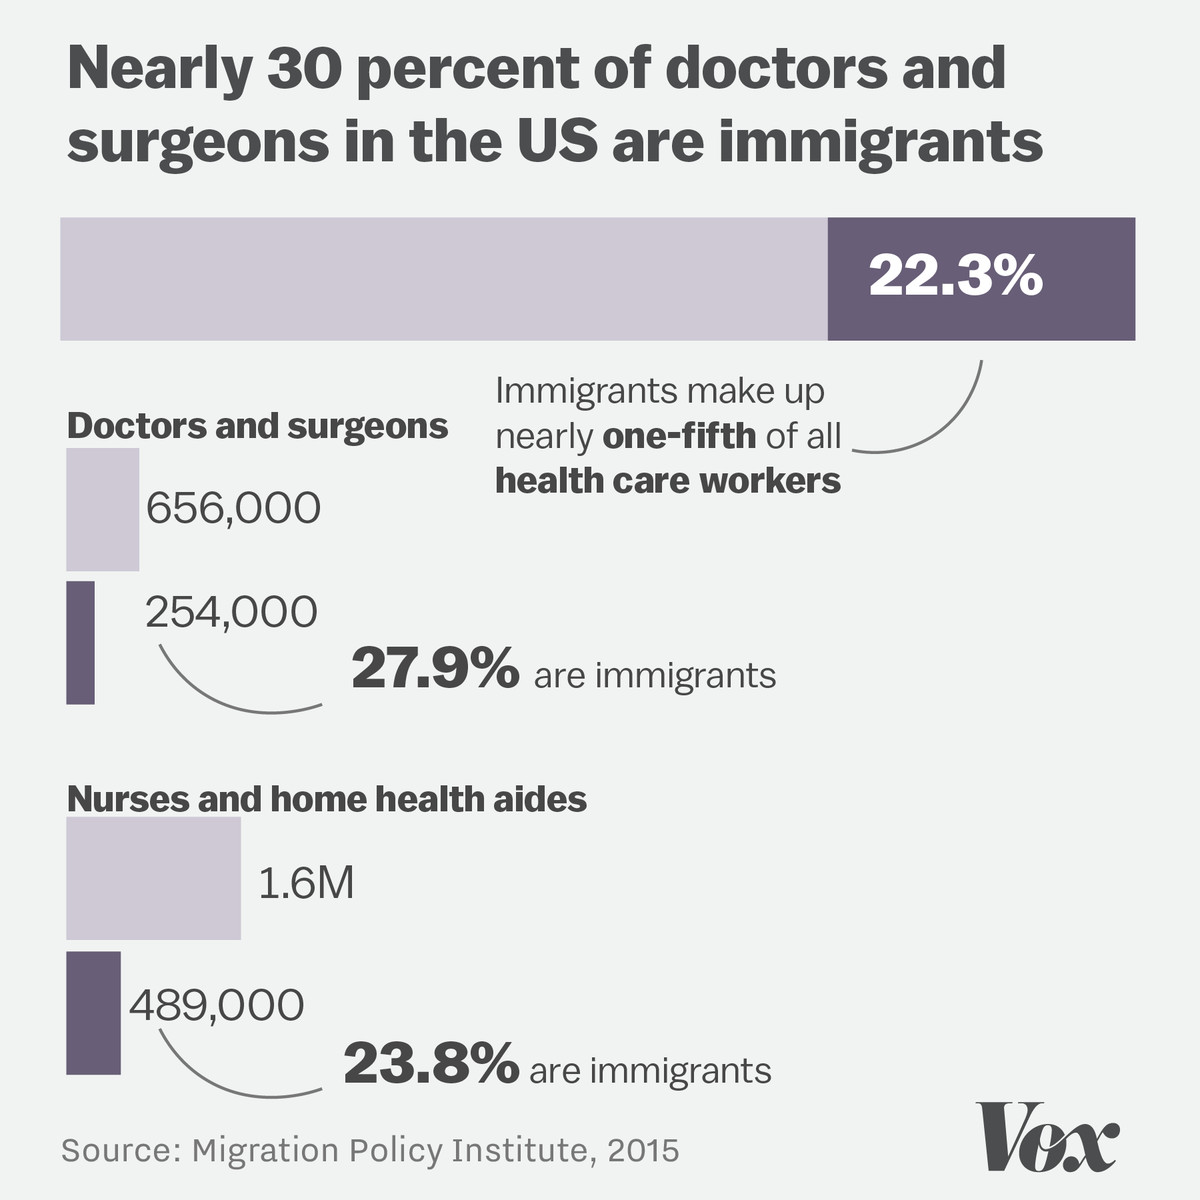 How Trump S Travel Ban Threatens Health Care In 3 Charts Vox